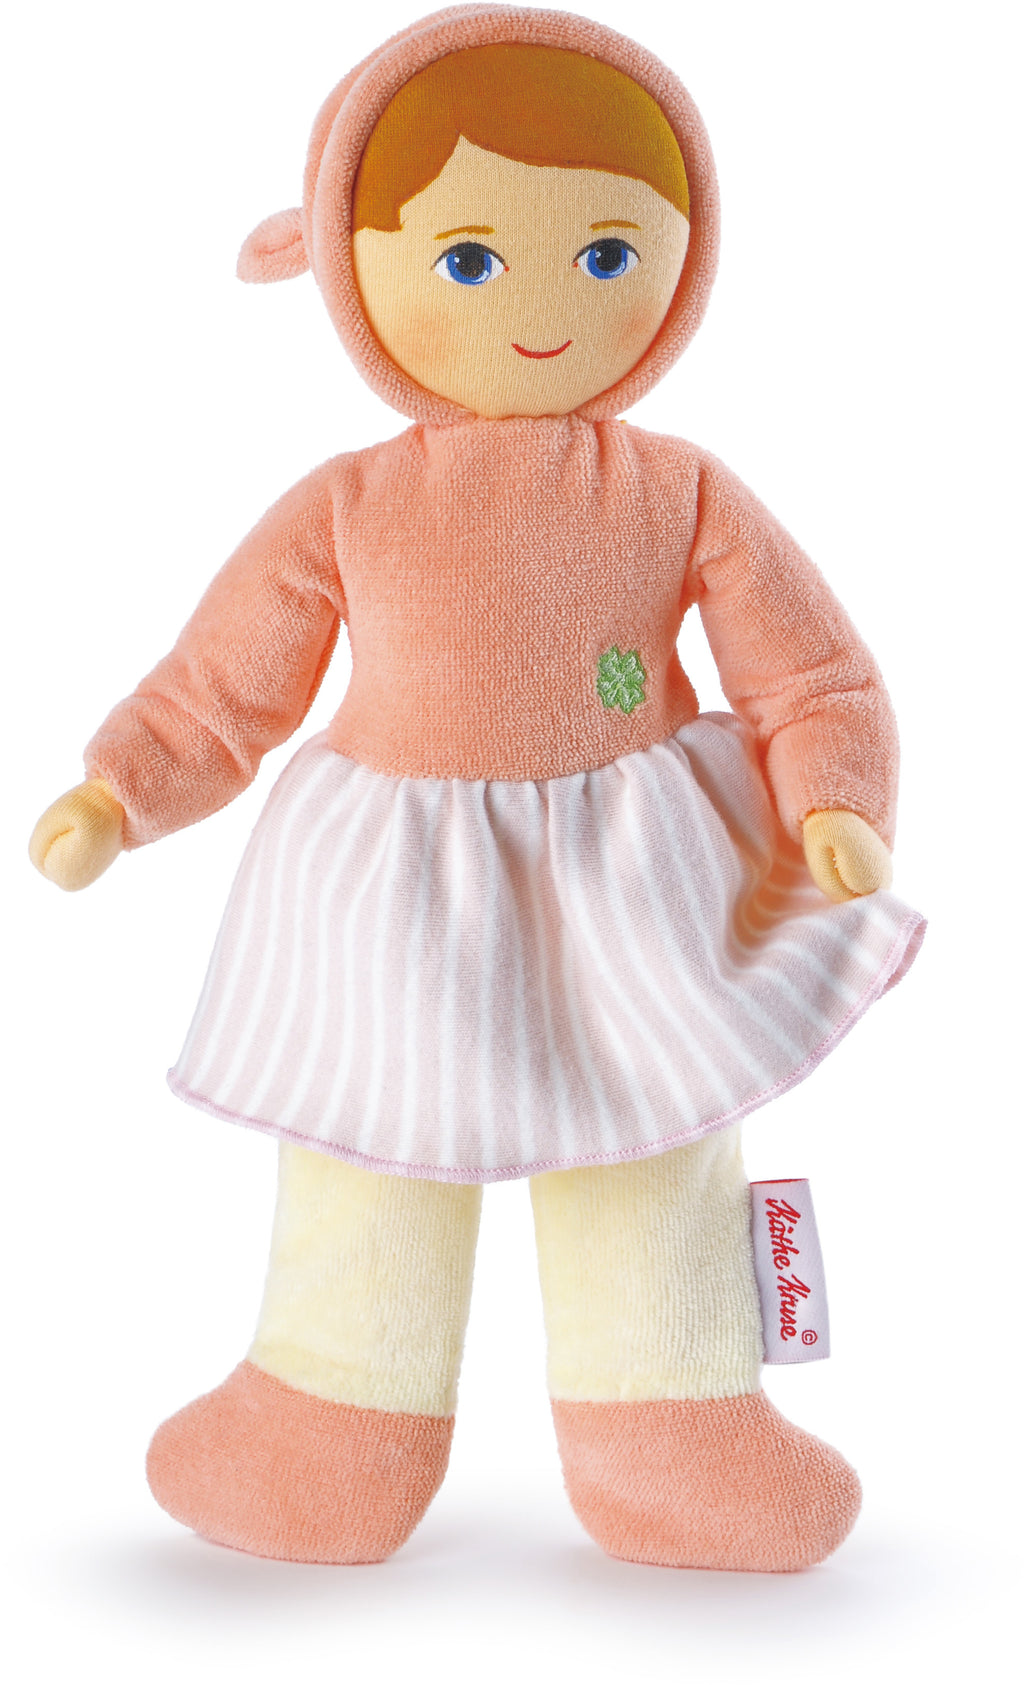 Kathe Kruse Good Luck Angel Terry Cloth Baby Apricot